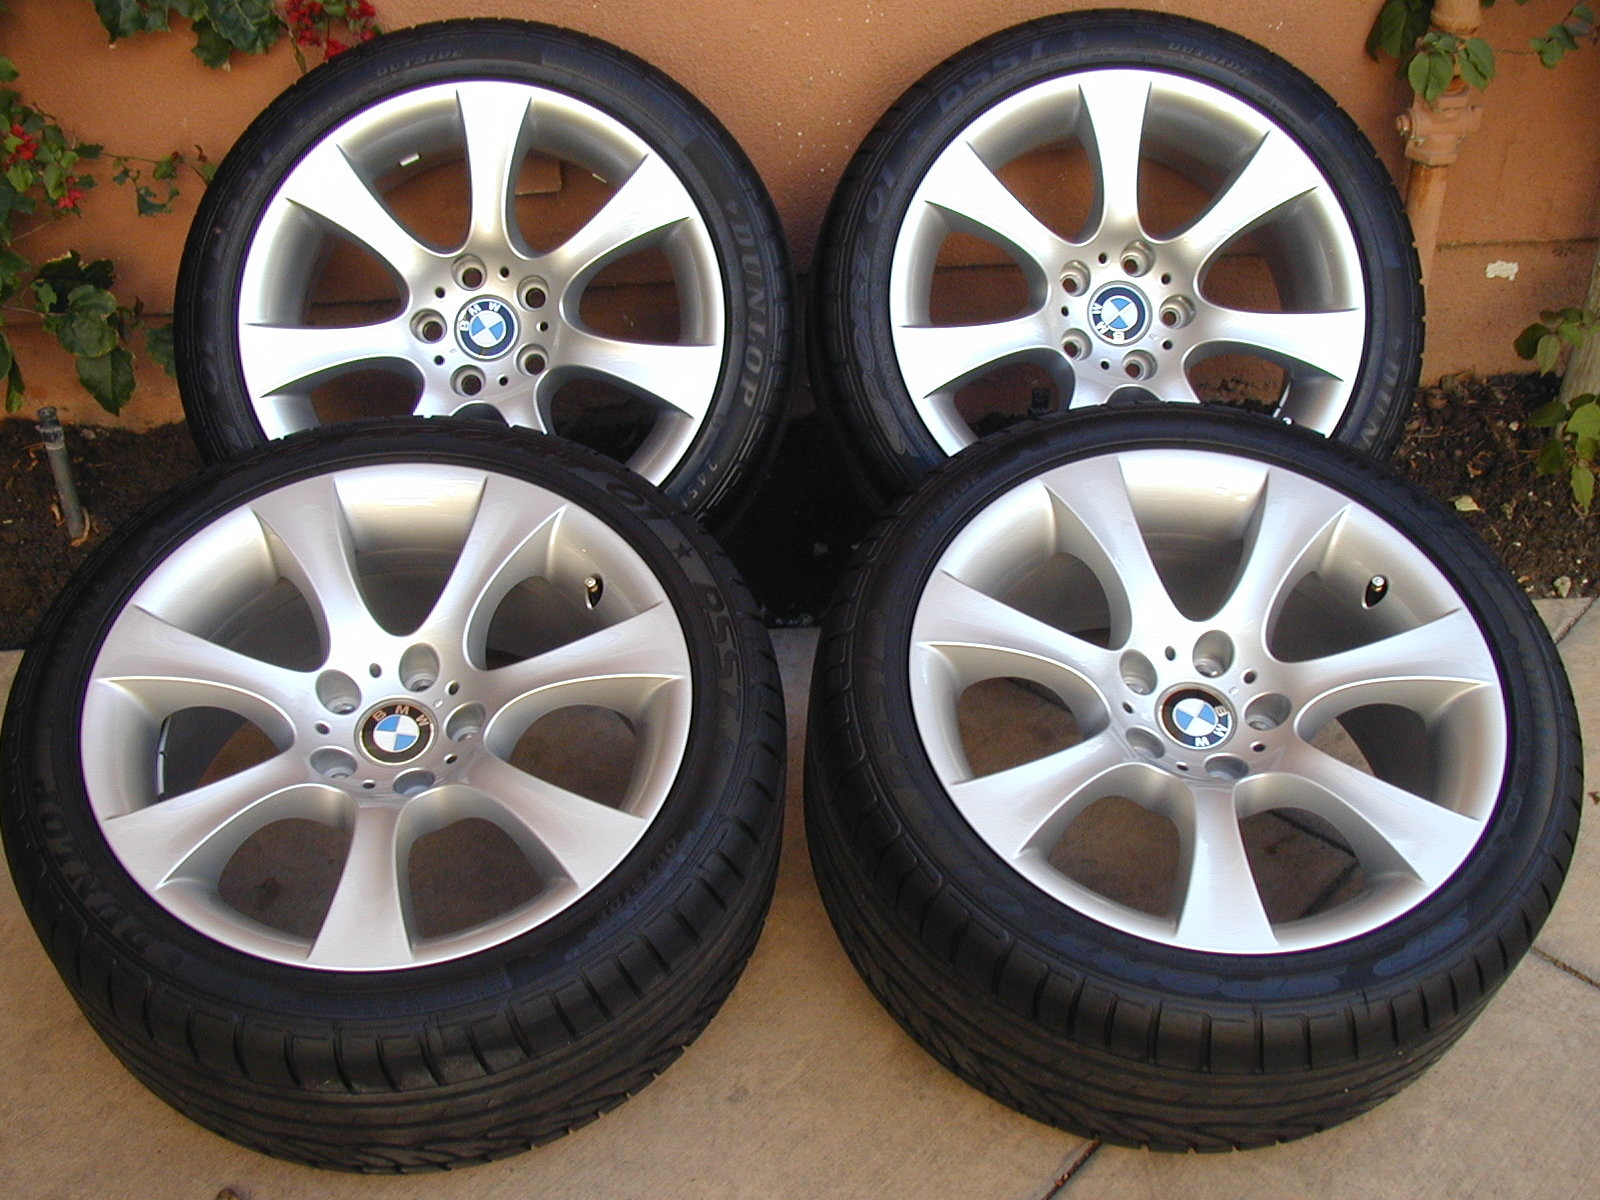 "2005 BMW E60 18""-7 spoke OEM Factory Sport wheels staggered w/new Dunlop tires-p1010002.jpg"